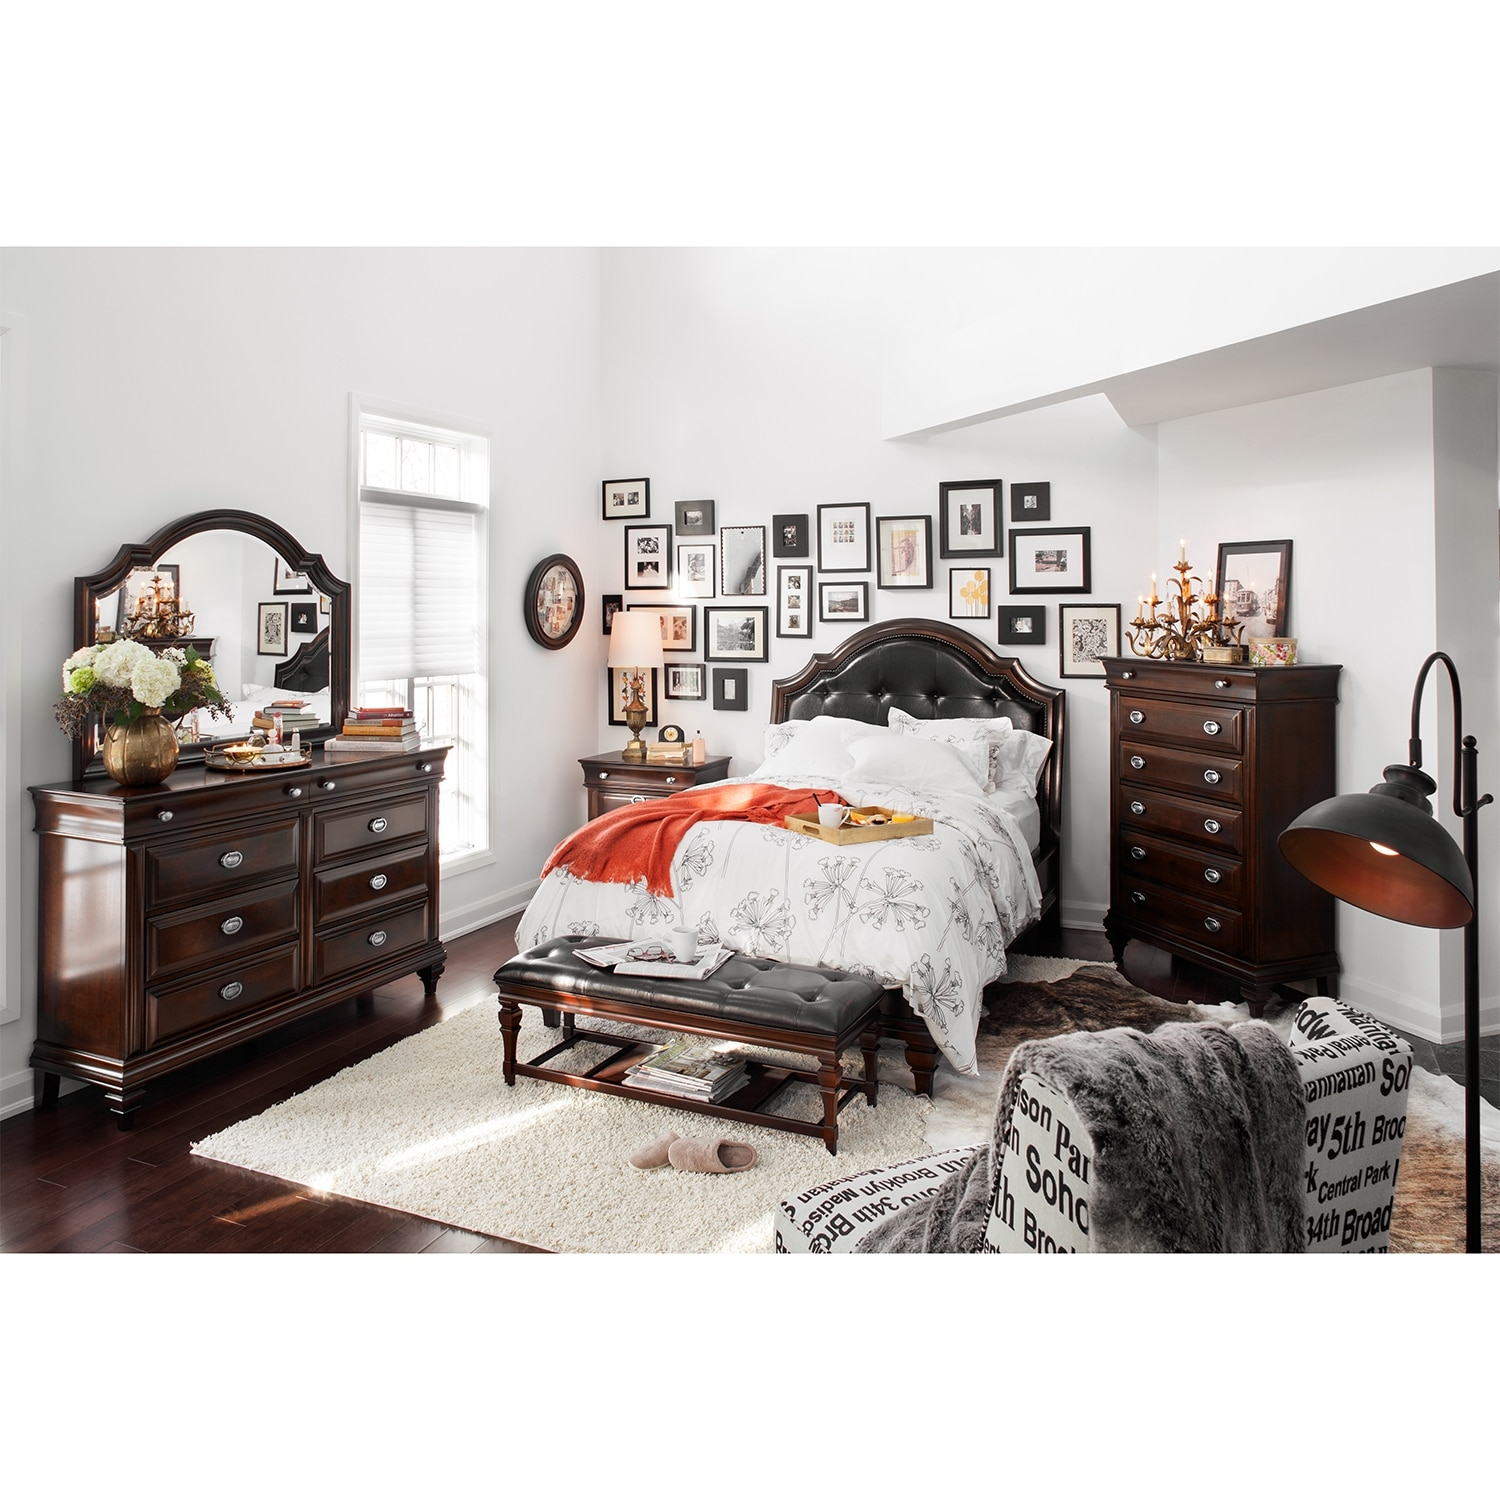 King And Queen Bedroom Decor King And Queen Bedroom King Queen Bedroom Decor Over Paint Love